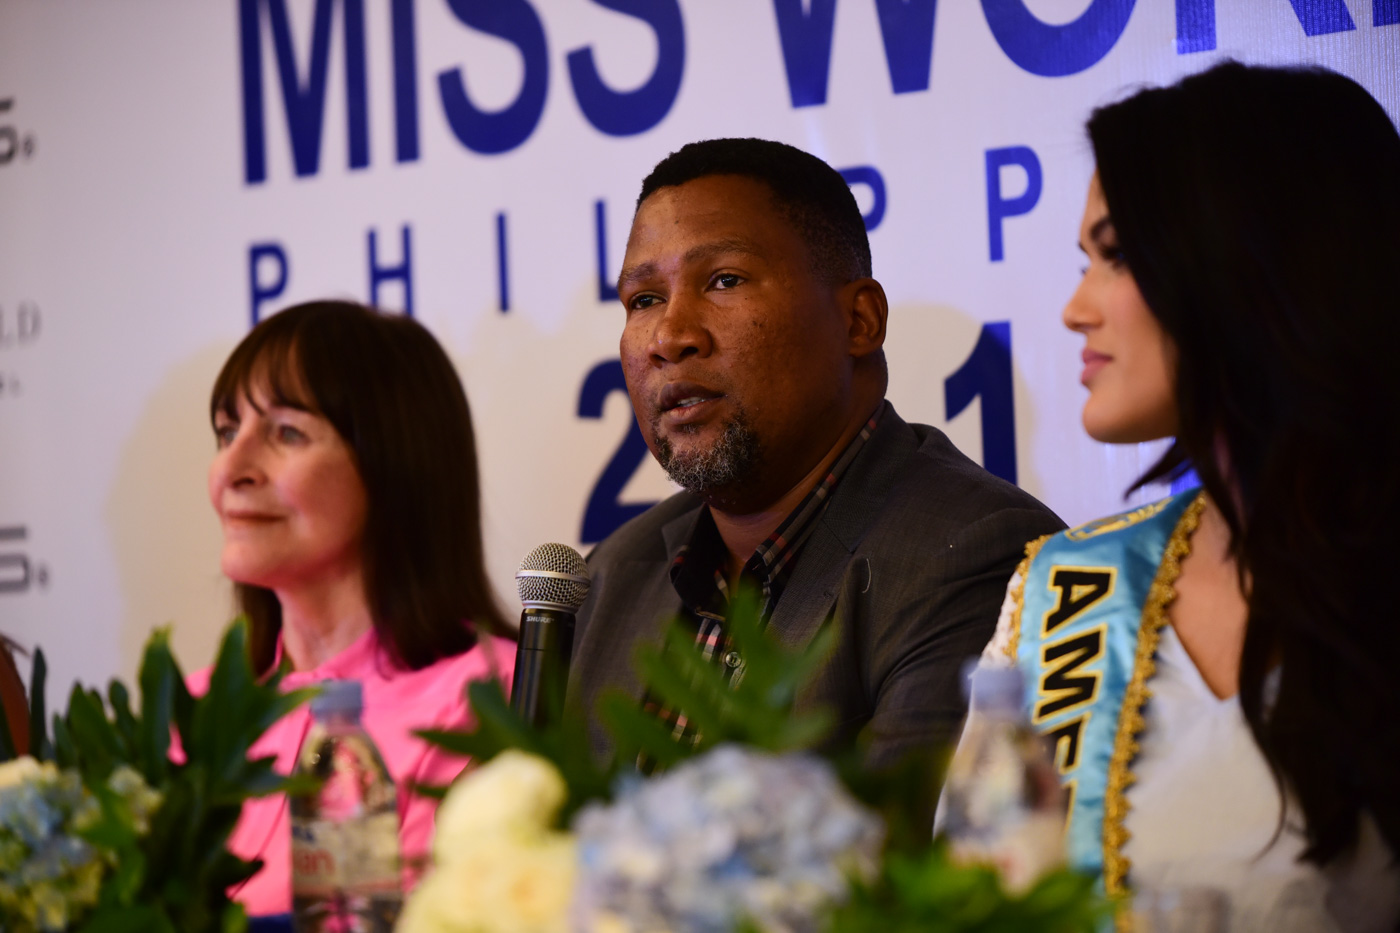 Chief Mandela answering questions from the media during the Miss World press conference on September 1.